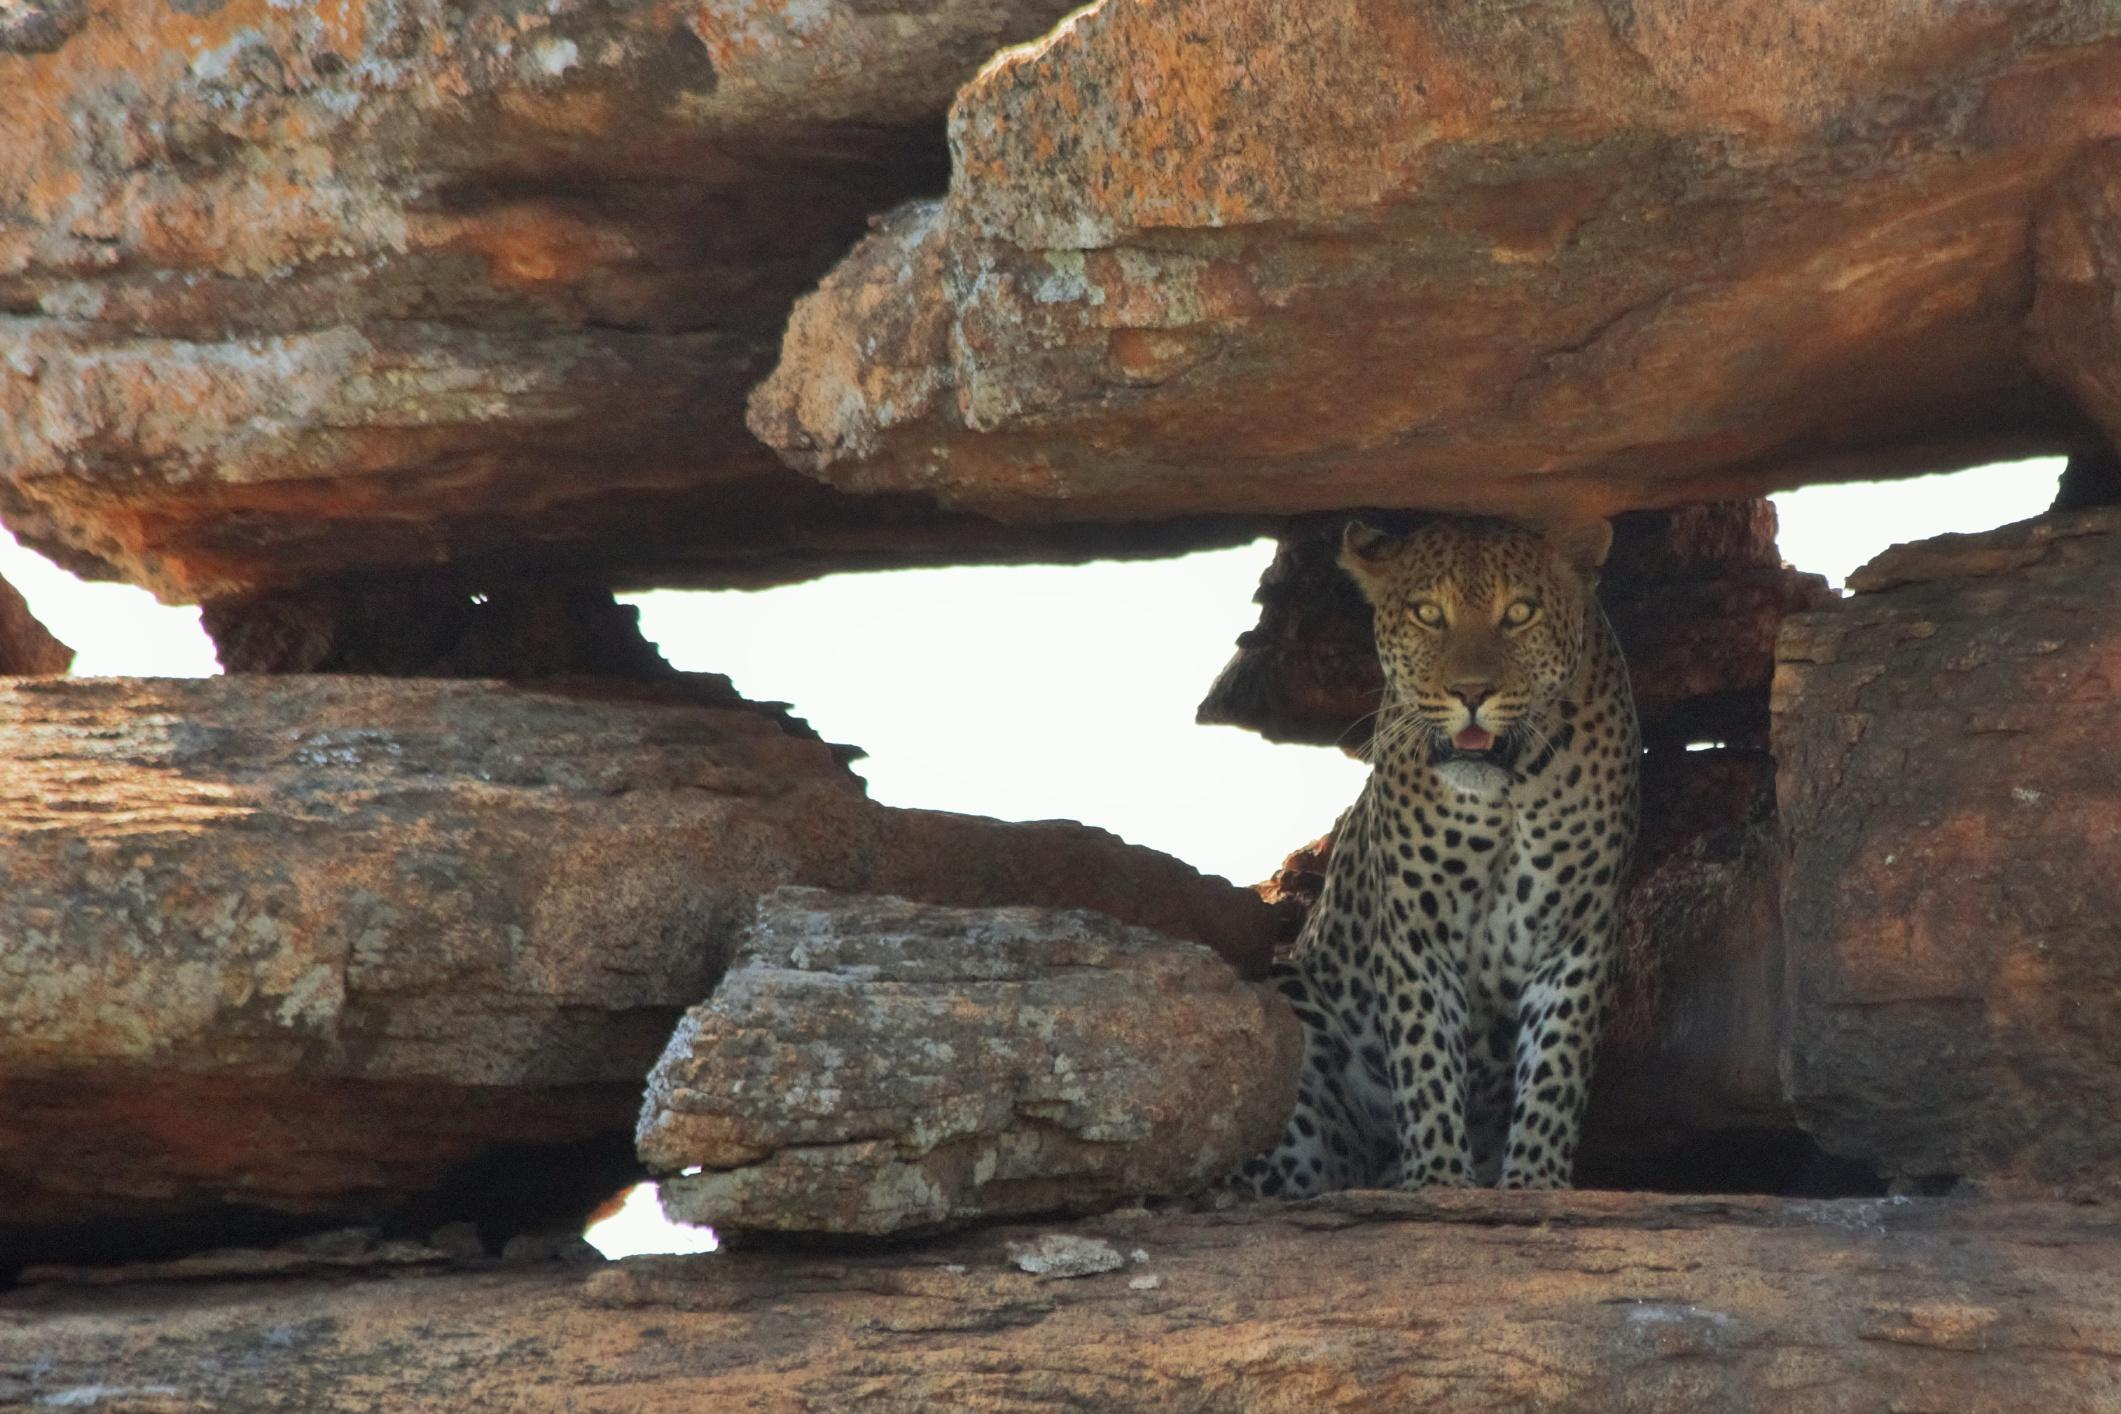 A leopard spotted during Projects Abroad's wildlife conservation volunteering for teenagers in Botswana